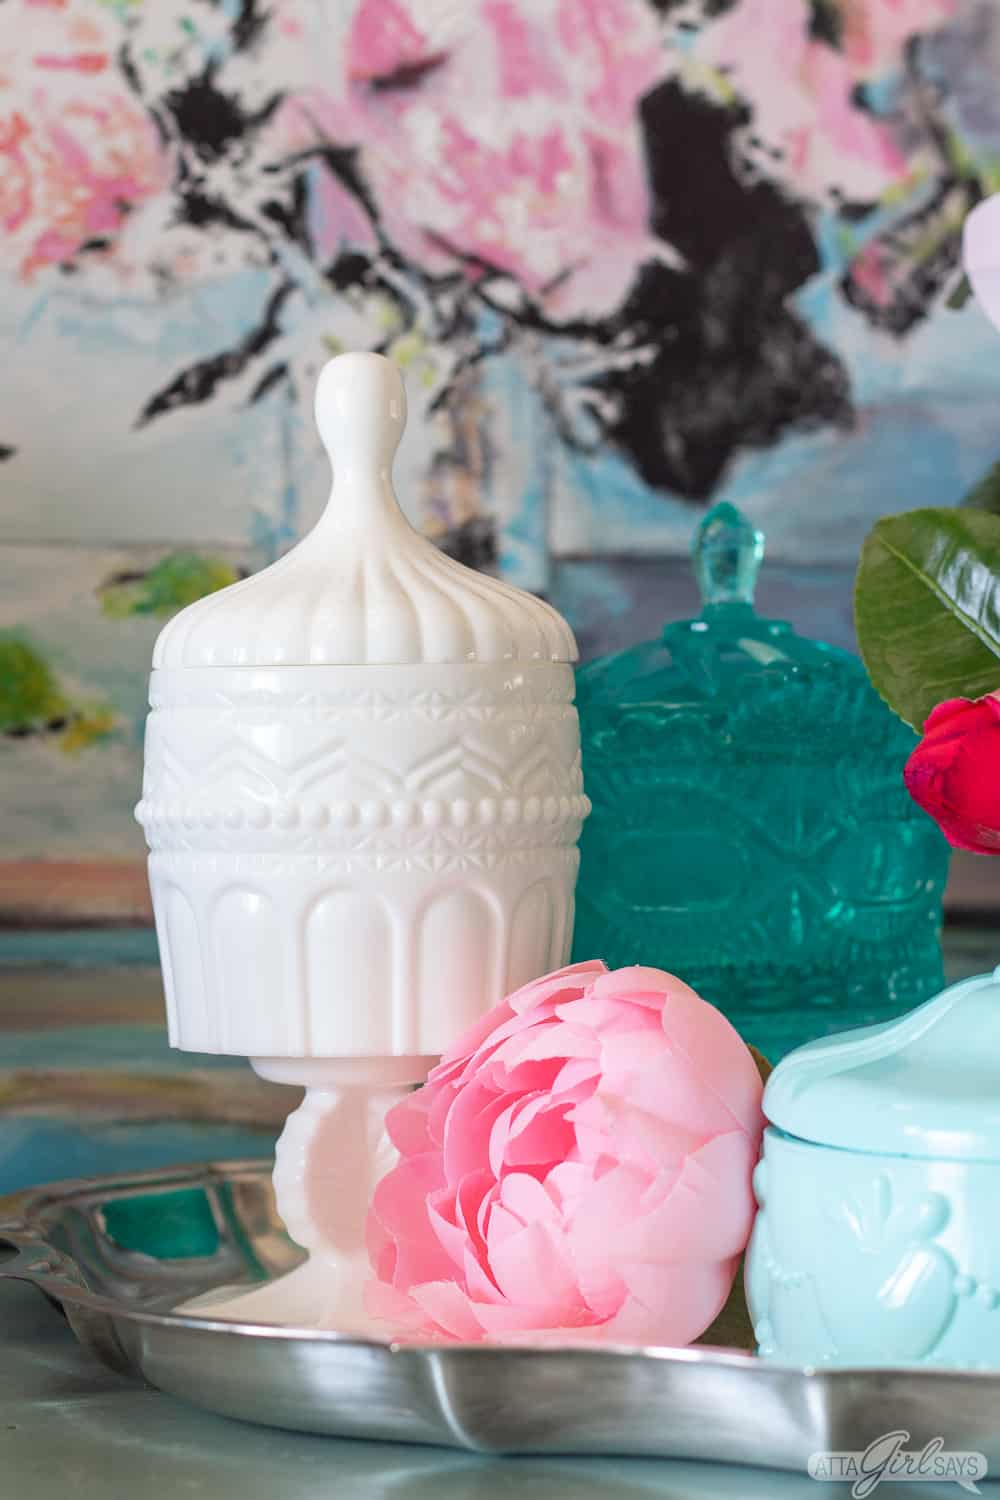 white resin jar on a pedestal with peony flowers and other colorful resin pieces